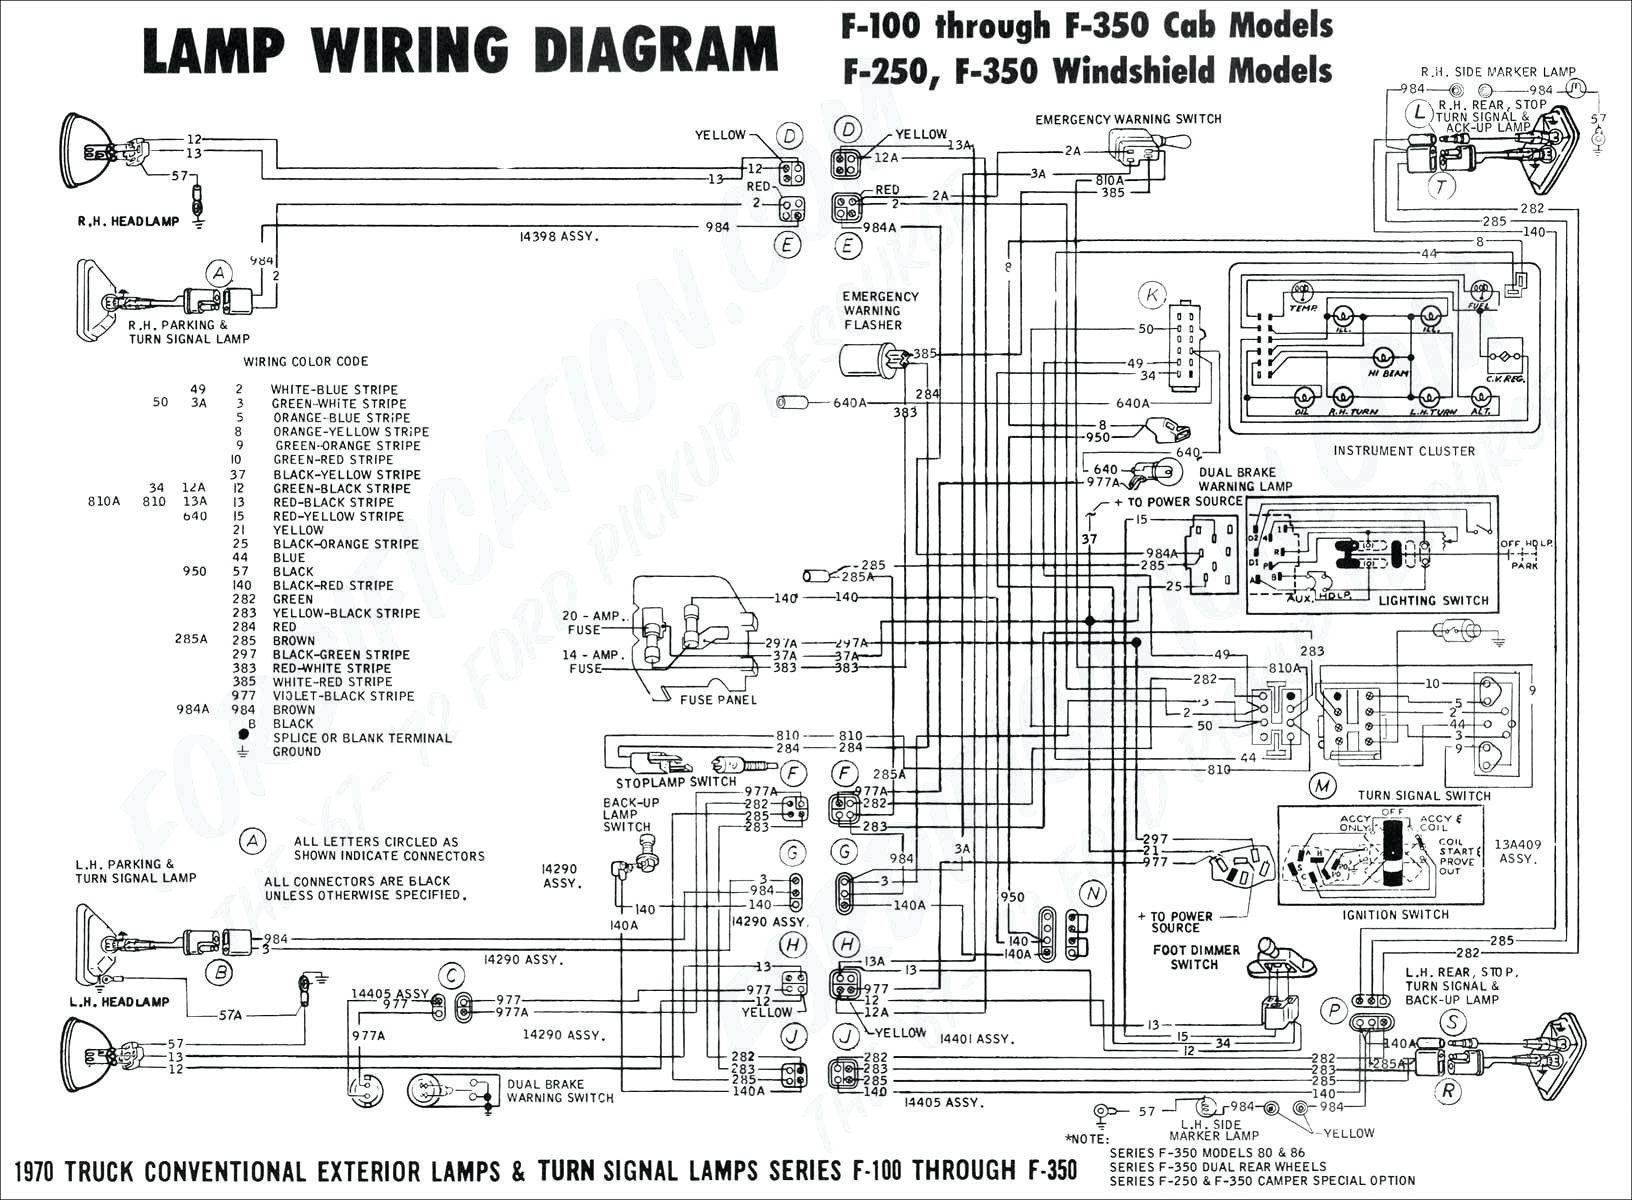 Wiring Diagram For 2006 Dodge Charger | Wiring Diagram on 2006 charger headlight, 06 charger wiring diagram, 2007 charger wiring diagram, 2006 charger water pump, 2006 charger fuel tank, 2003 ram wiring diagram, 2006 charger speaker sizes, 2006 charger coolant leak, car charger wiring diagram, 2006 charger frame, 2006 charger radiator, dodge wiring diagram, 2006 charger starter, 2006 charger fuse diagram, 2006 charger ignition switch, battery charger wiring diagram, 2005 explorer wiring diagram, 73 charger wiring diagram, 2007 dodge charger diagram, 2006 charger rear suspension,